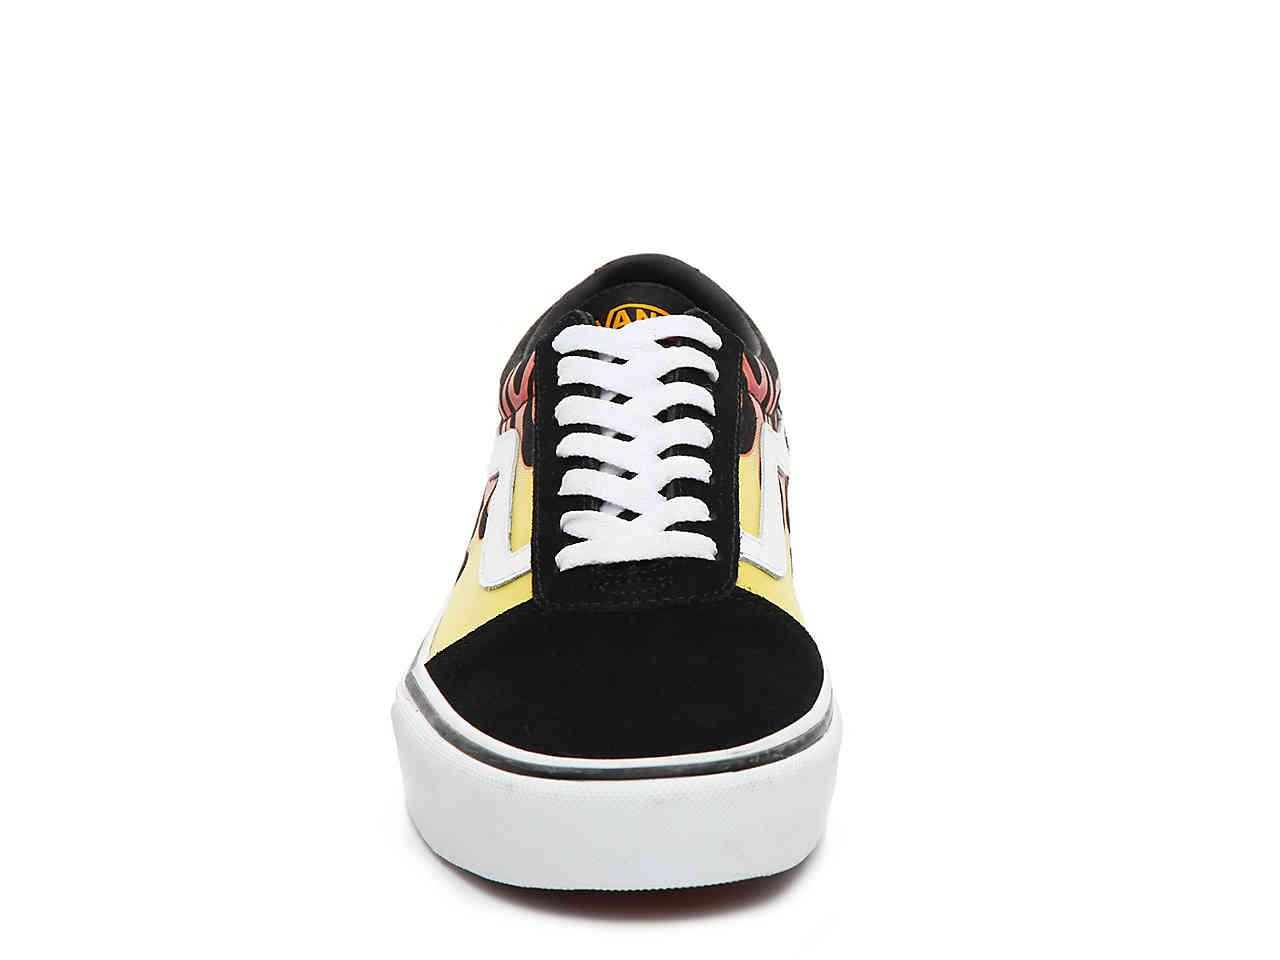 eb7d6d77640 Lyst - Vans Ward Lo Sneaker in Black for Men